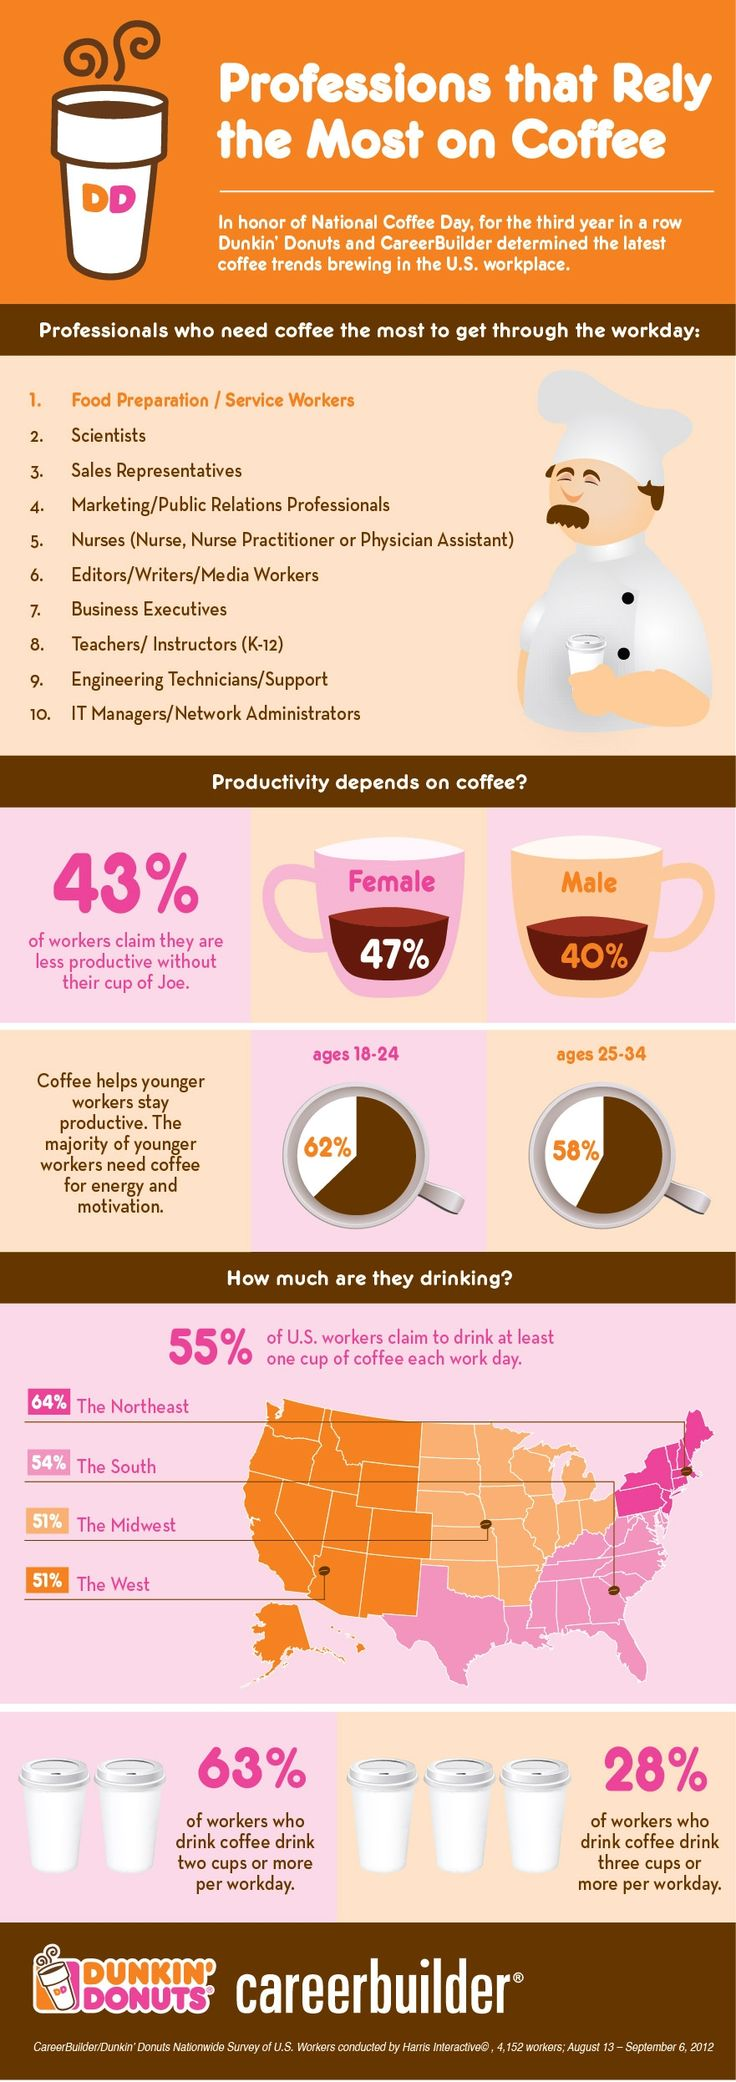 Coffee addiction by profession. Marketing = #4. Nice branding and content marketing also by Dunkin Donuts and Career Builder.